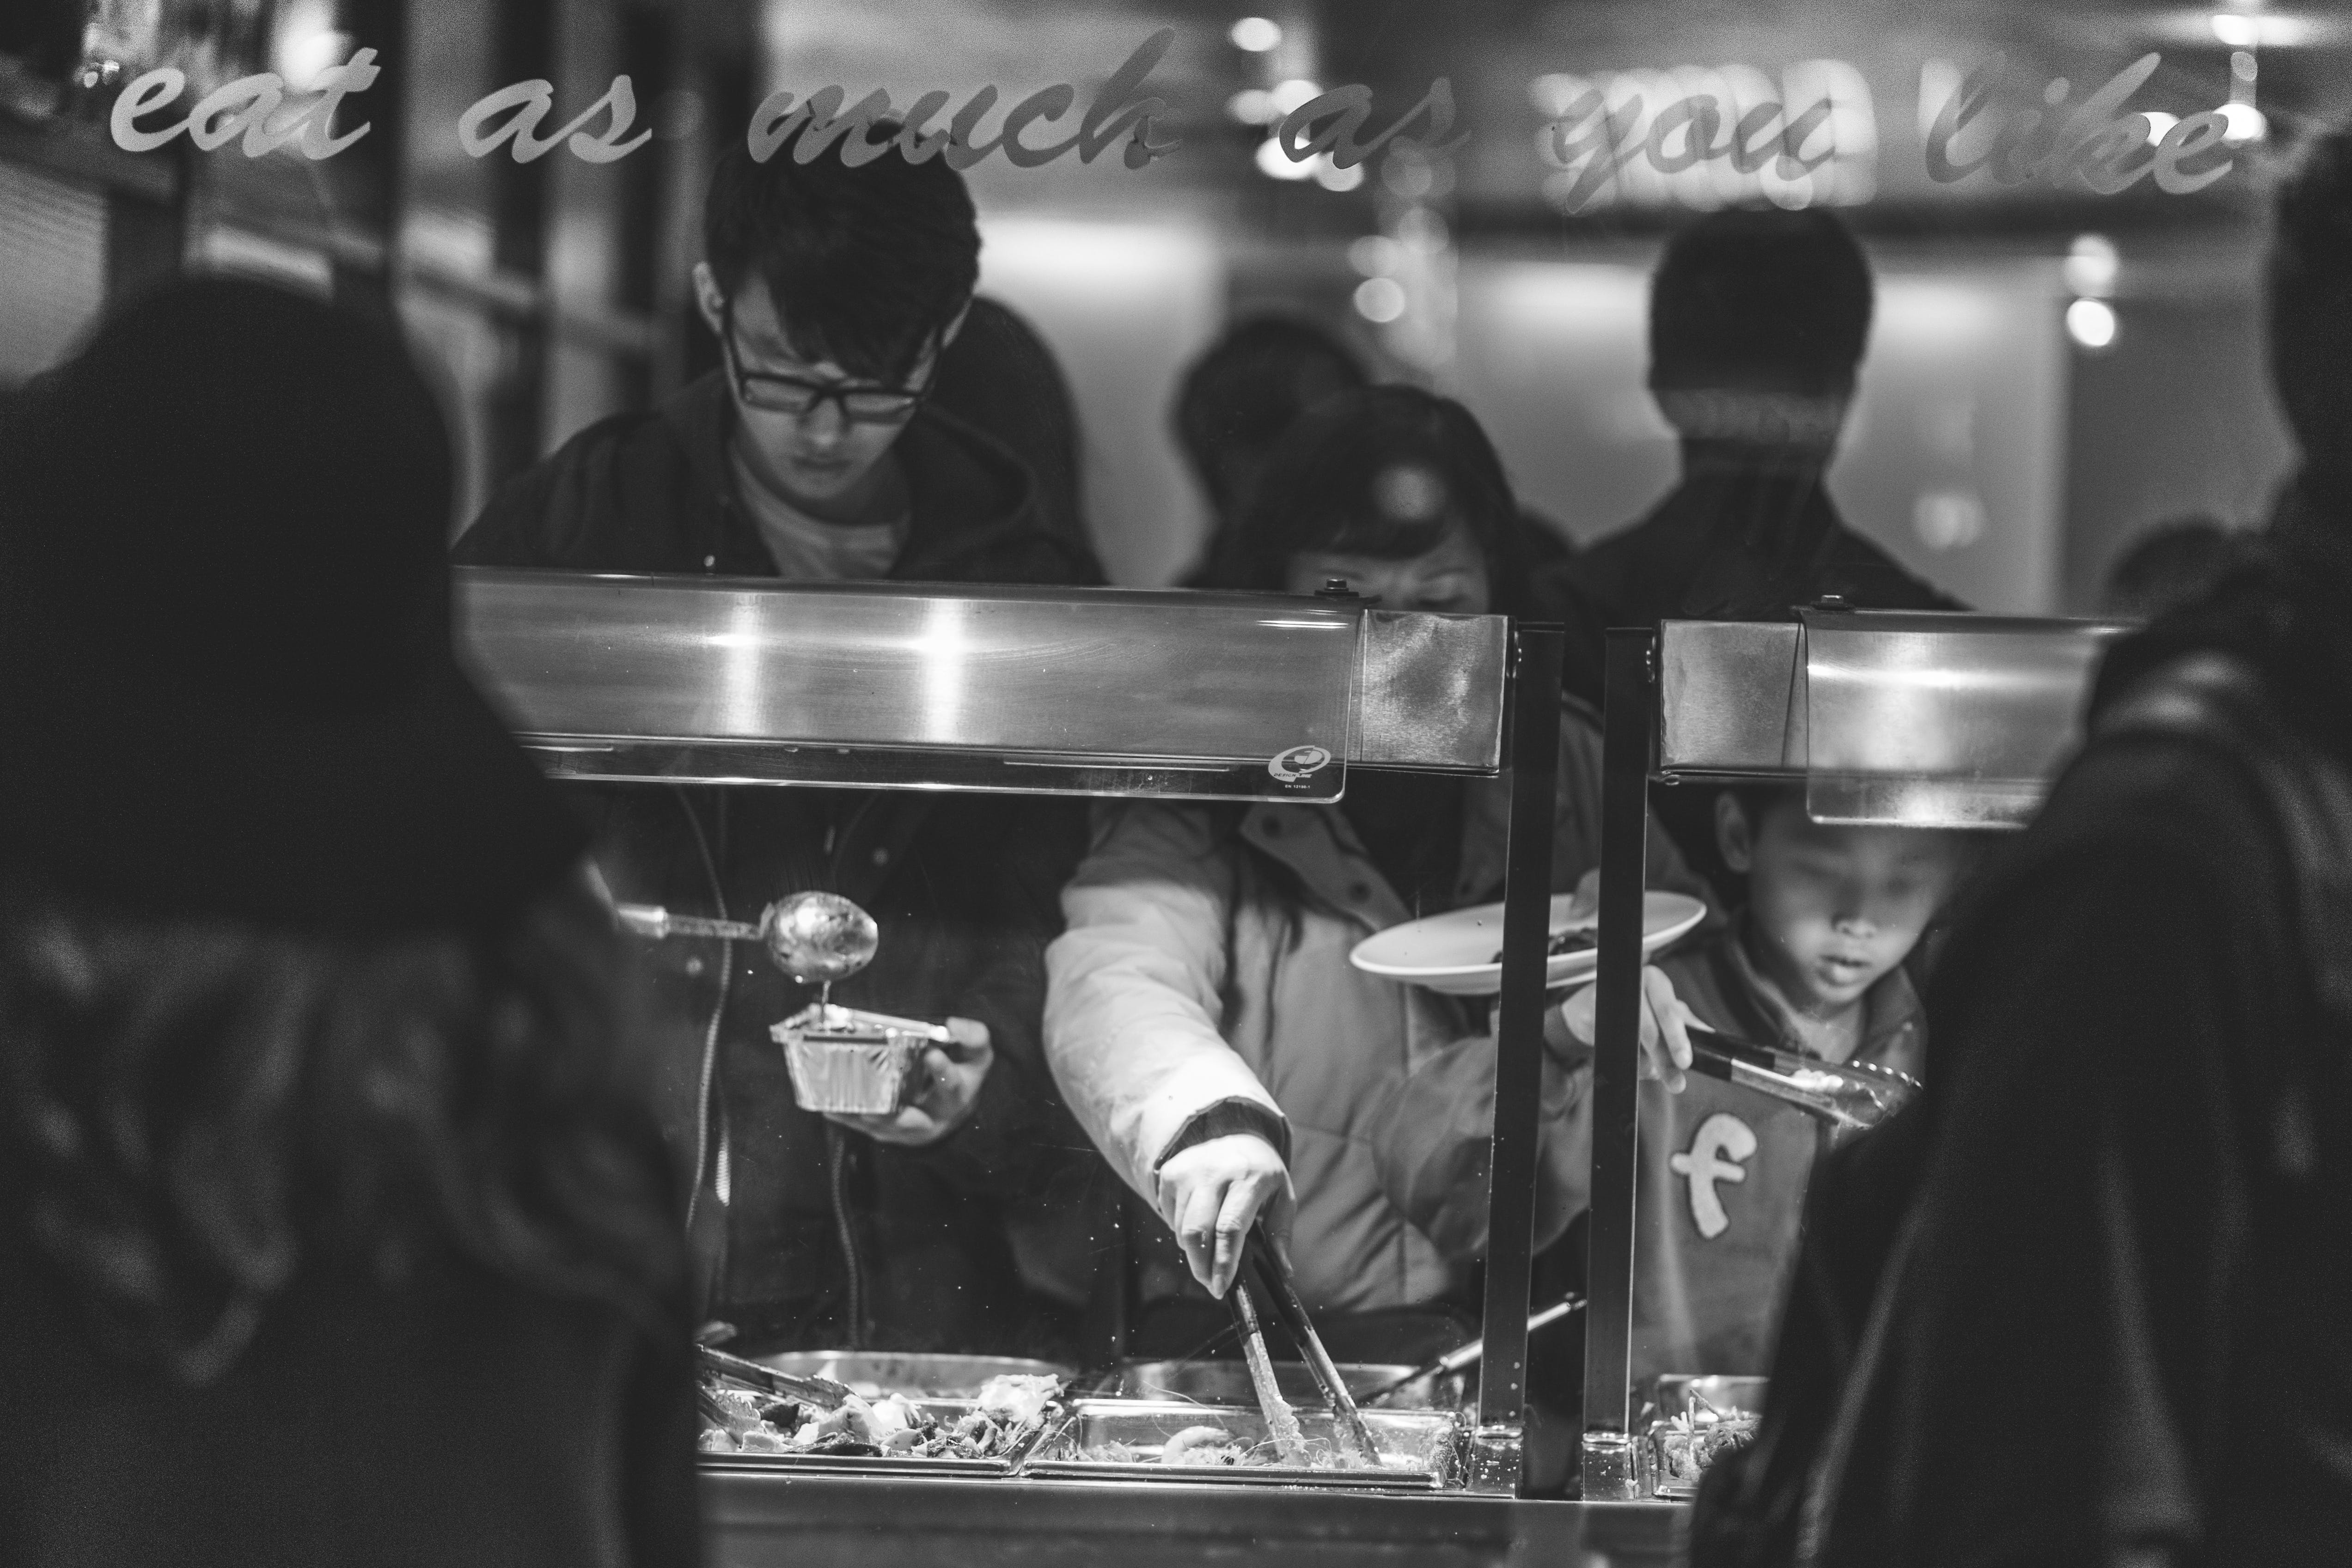 Grayscale Photo of Children Taking Food from Counter